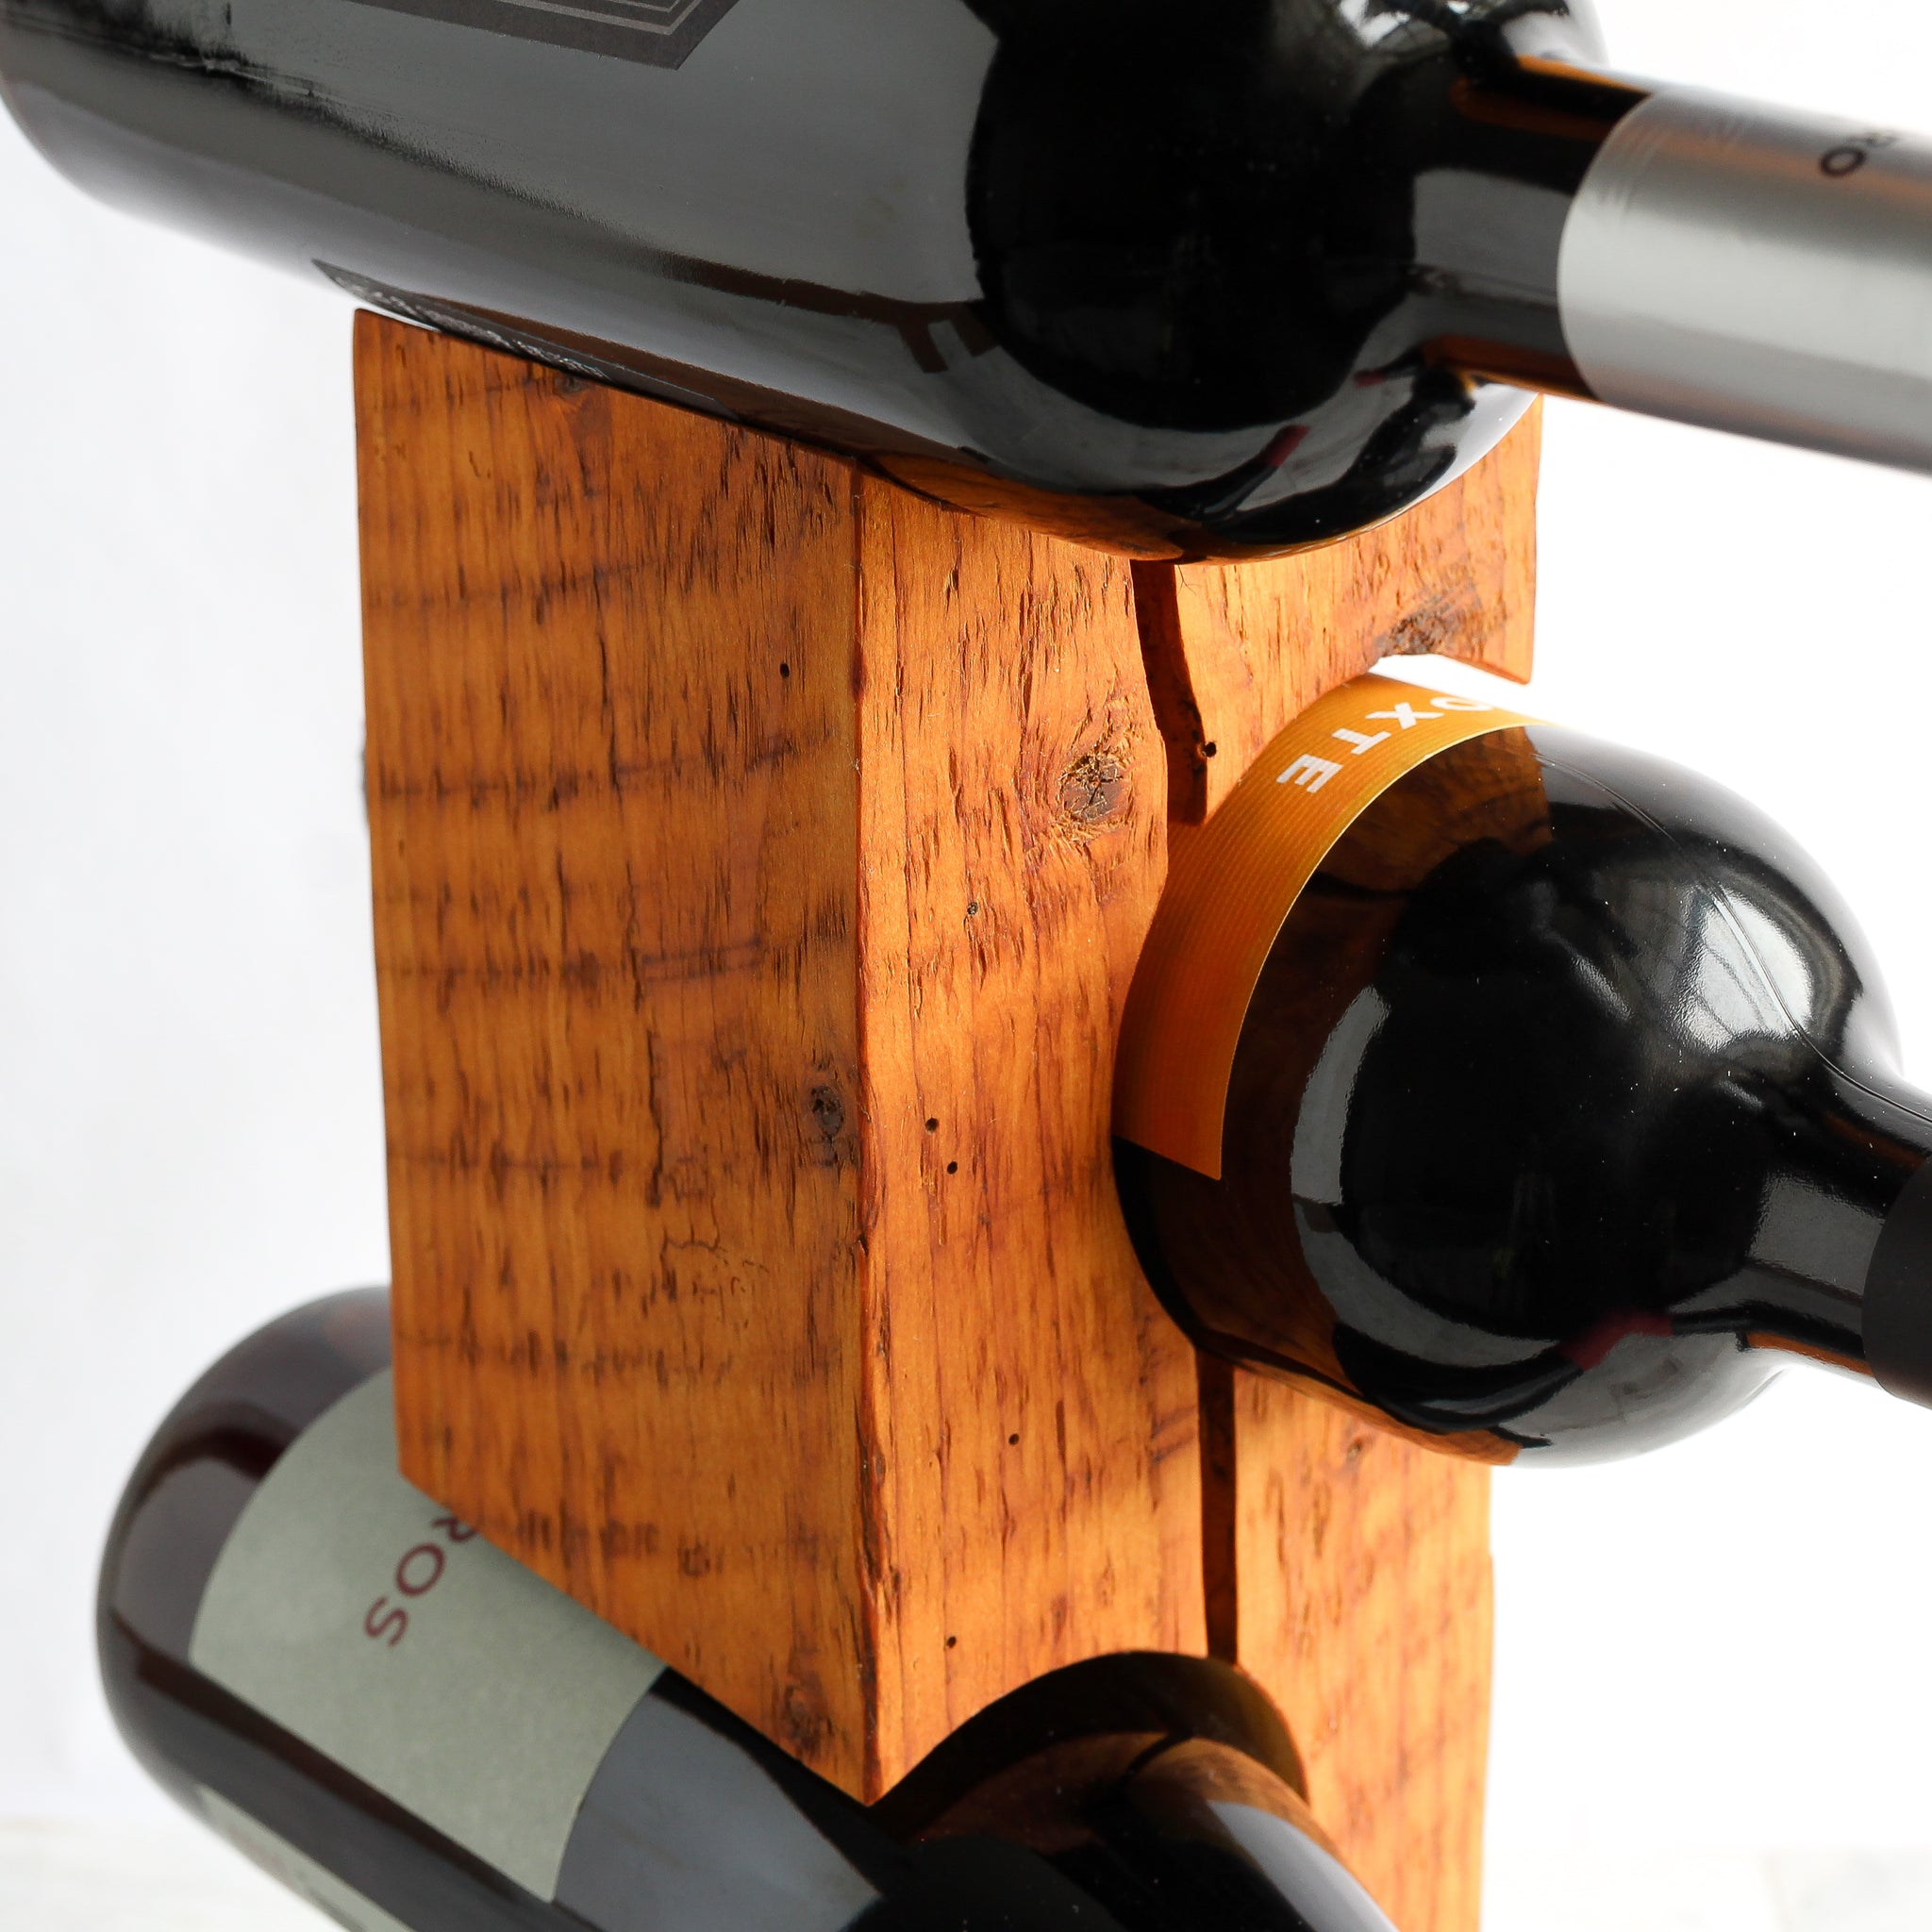 Custom Tabletop Wine Rack from Reclaimed Late-1800s Vermont Barn Wood